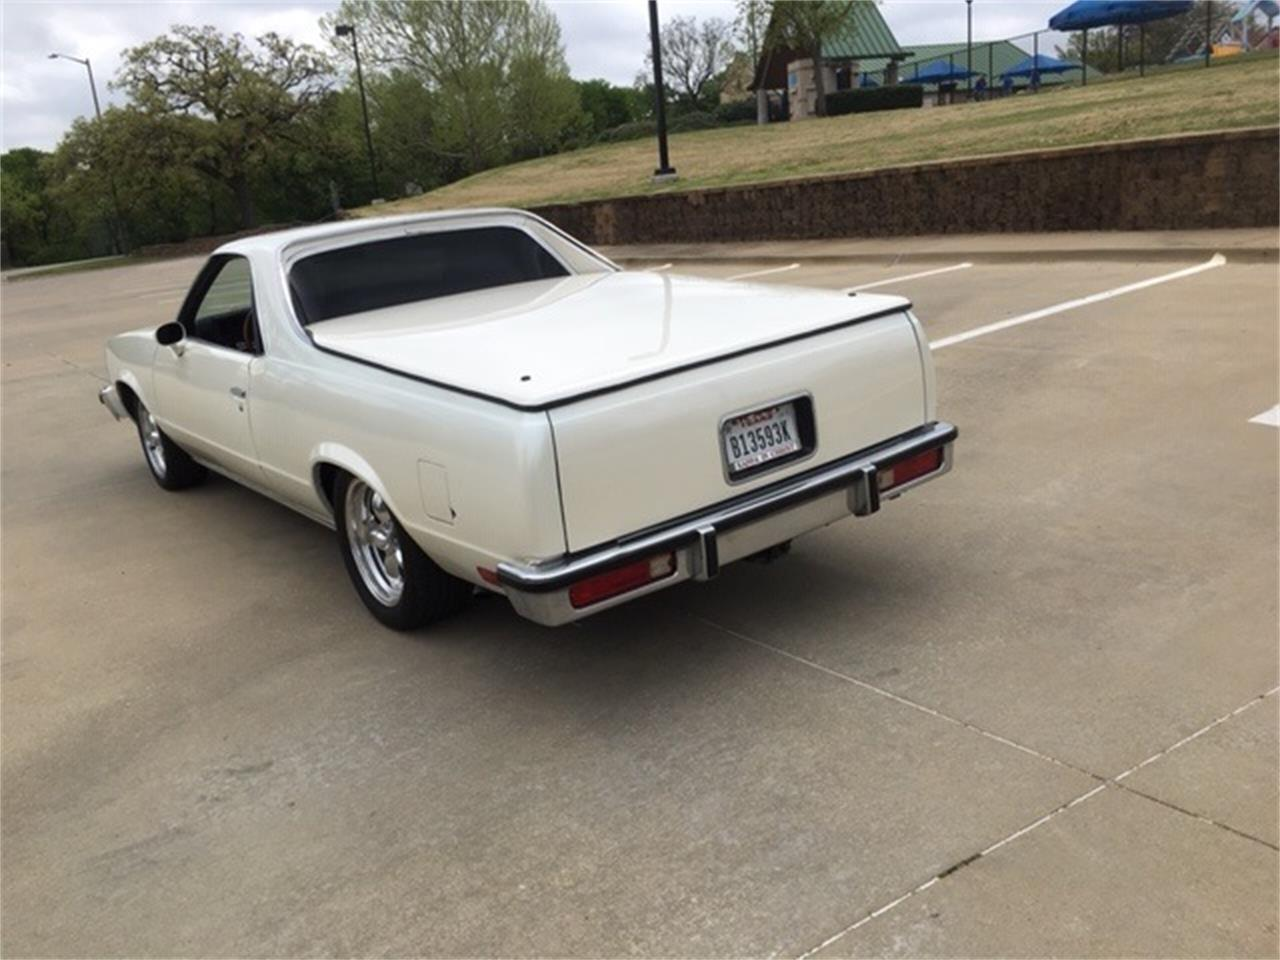 Large Picture of 1981 El Camino located in Arlington Texas - $25,000.00 Offered by a Private Seller - PR95